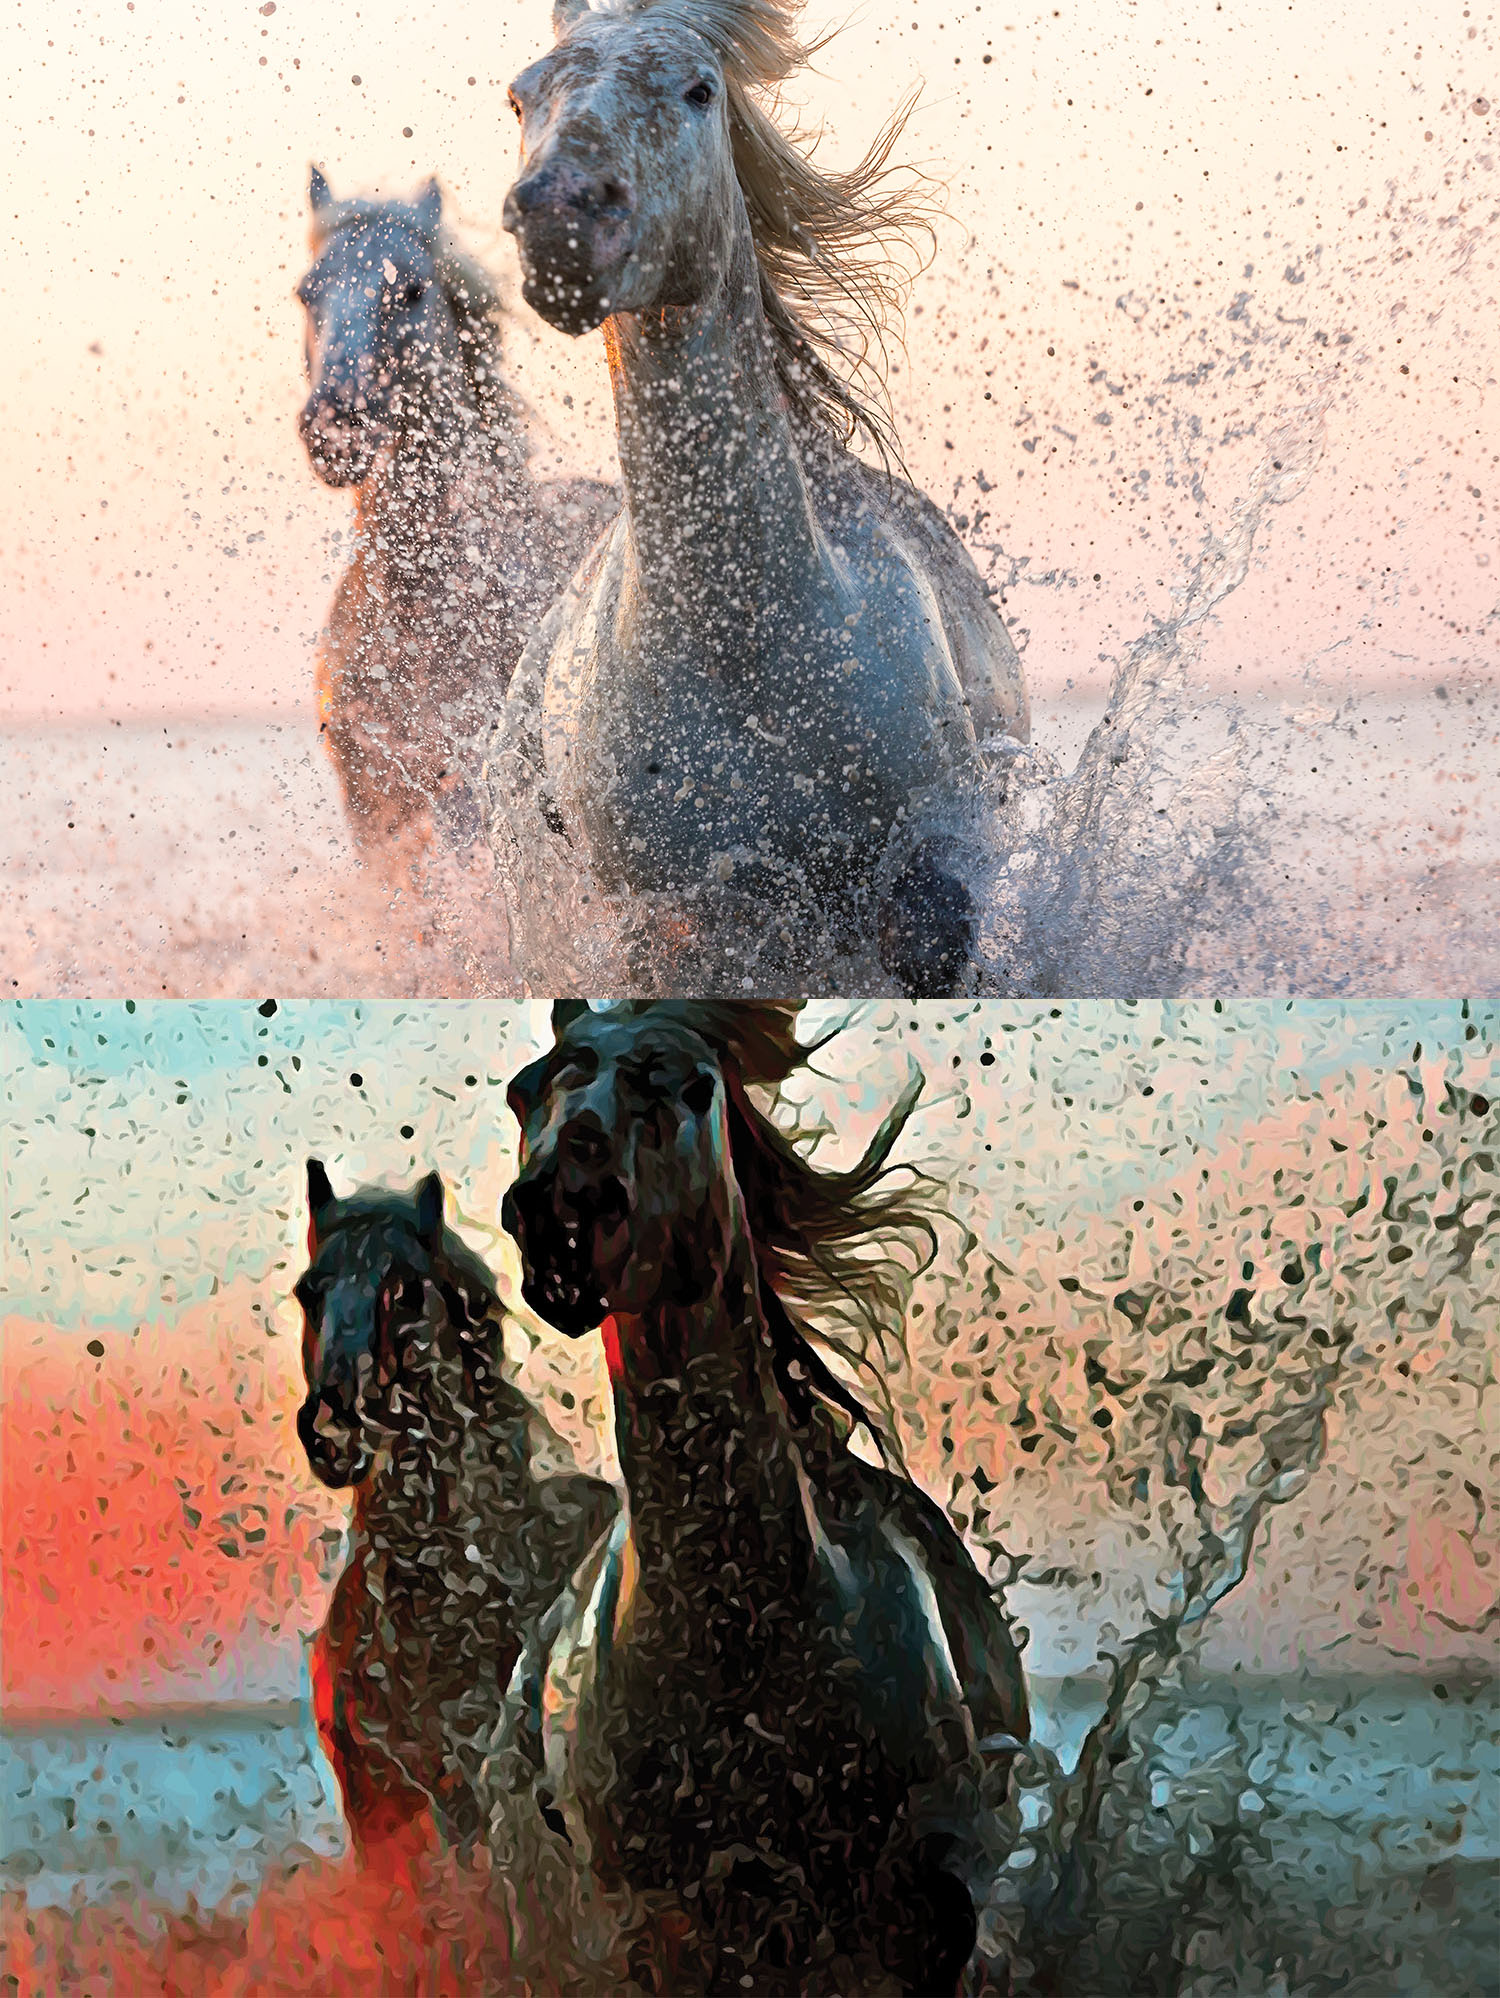 Before and after stylized image of wild horses running in the waves spraying up water